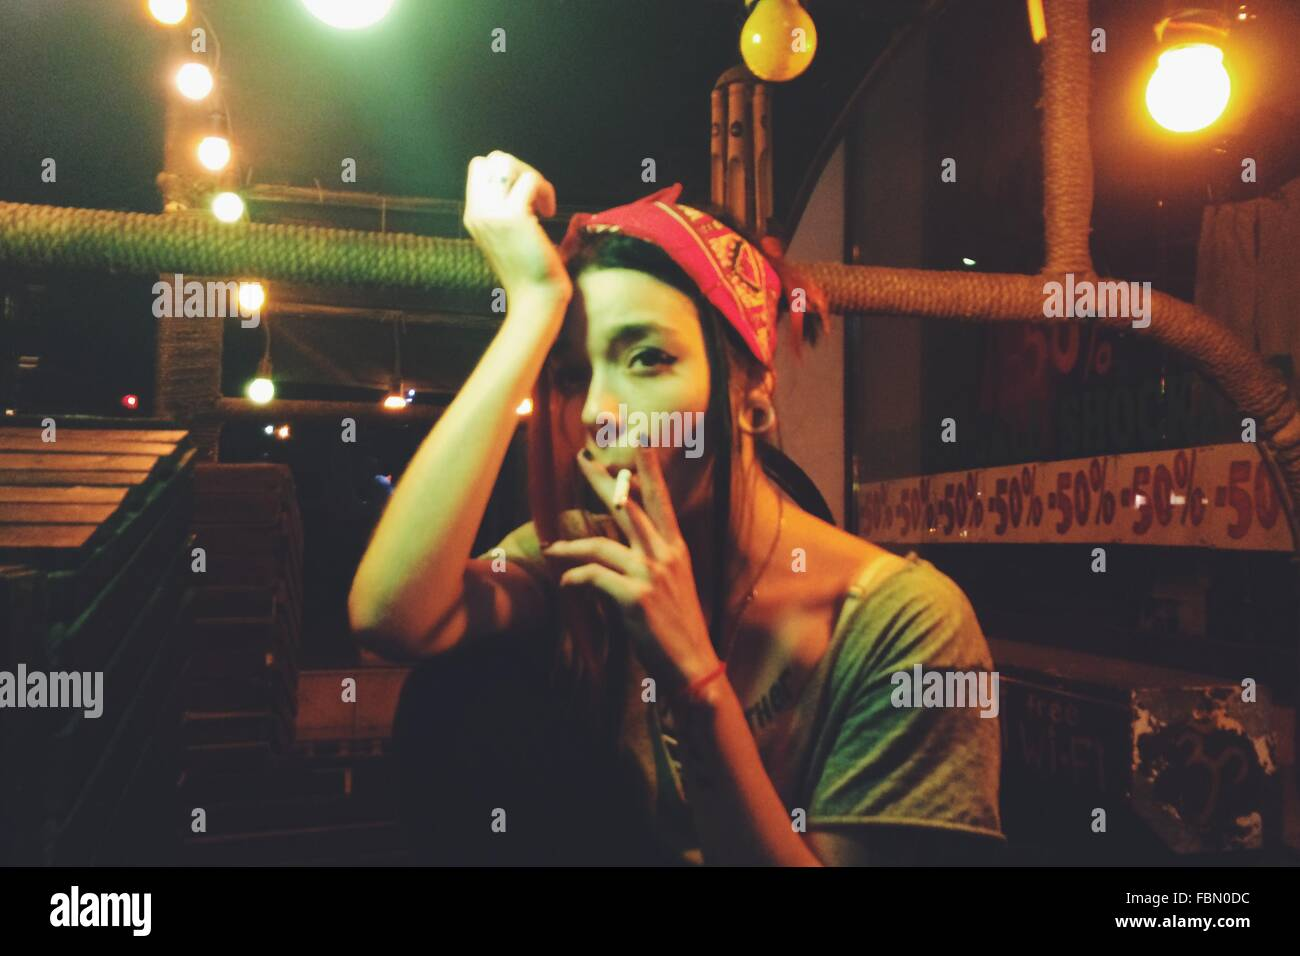 Young Woman With Head In Hand Smoking While Sitting In Illuminated Balcony - Stock Image